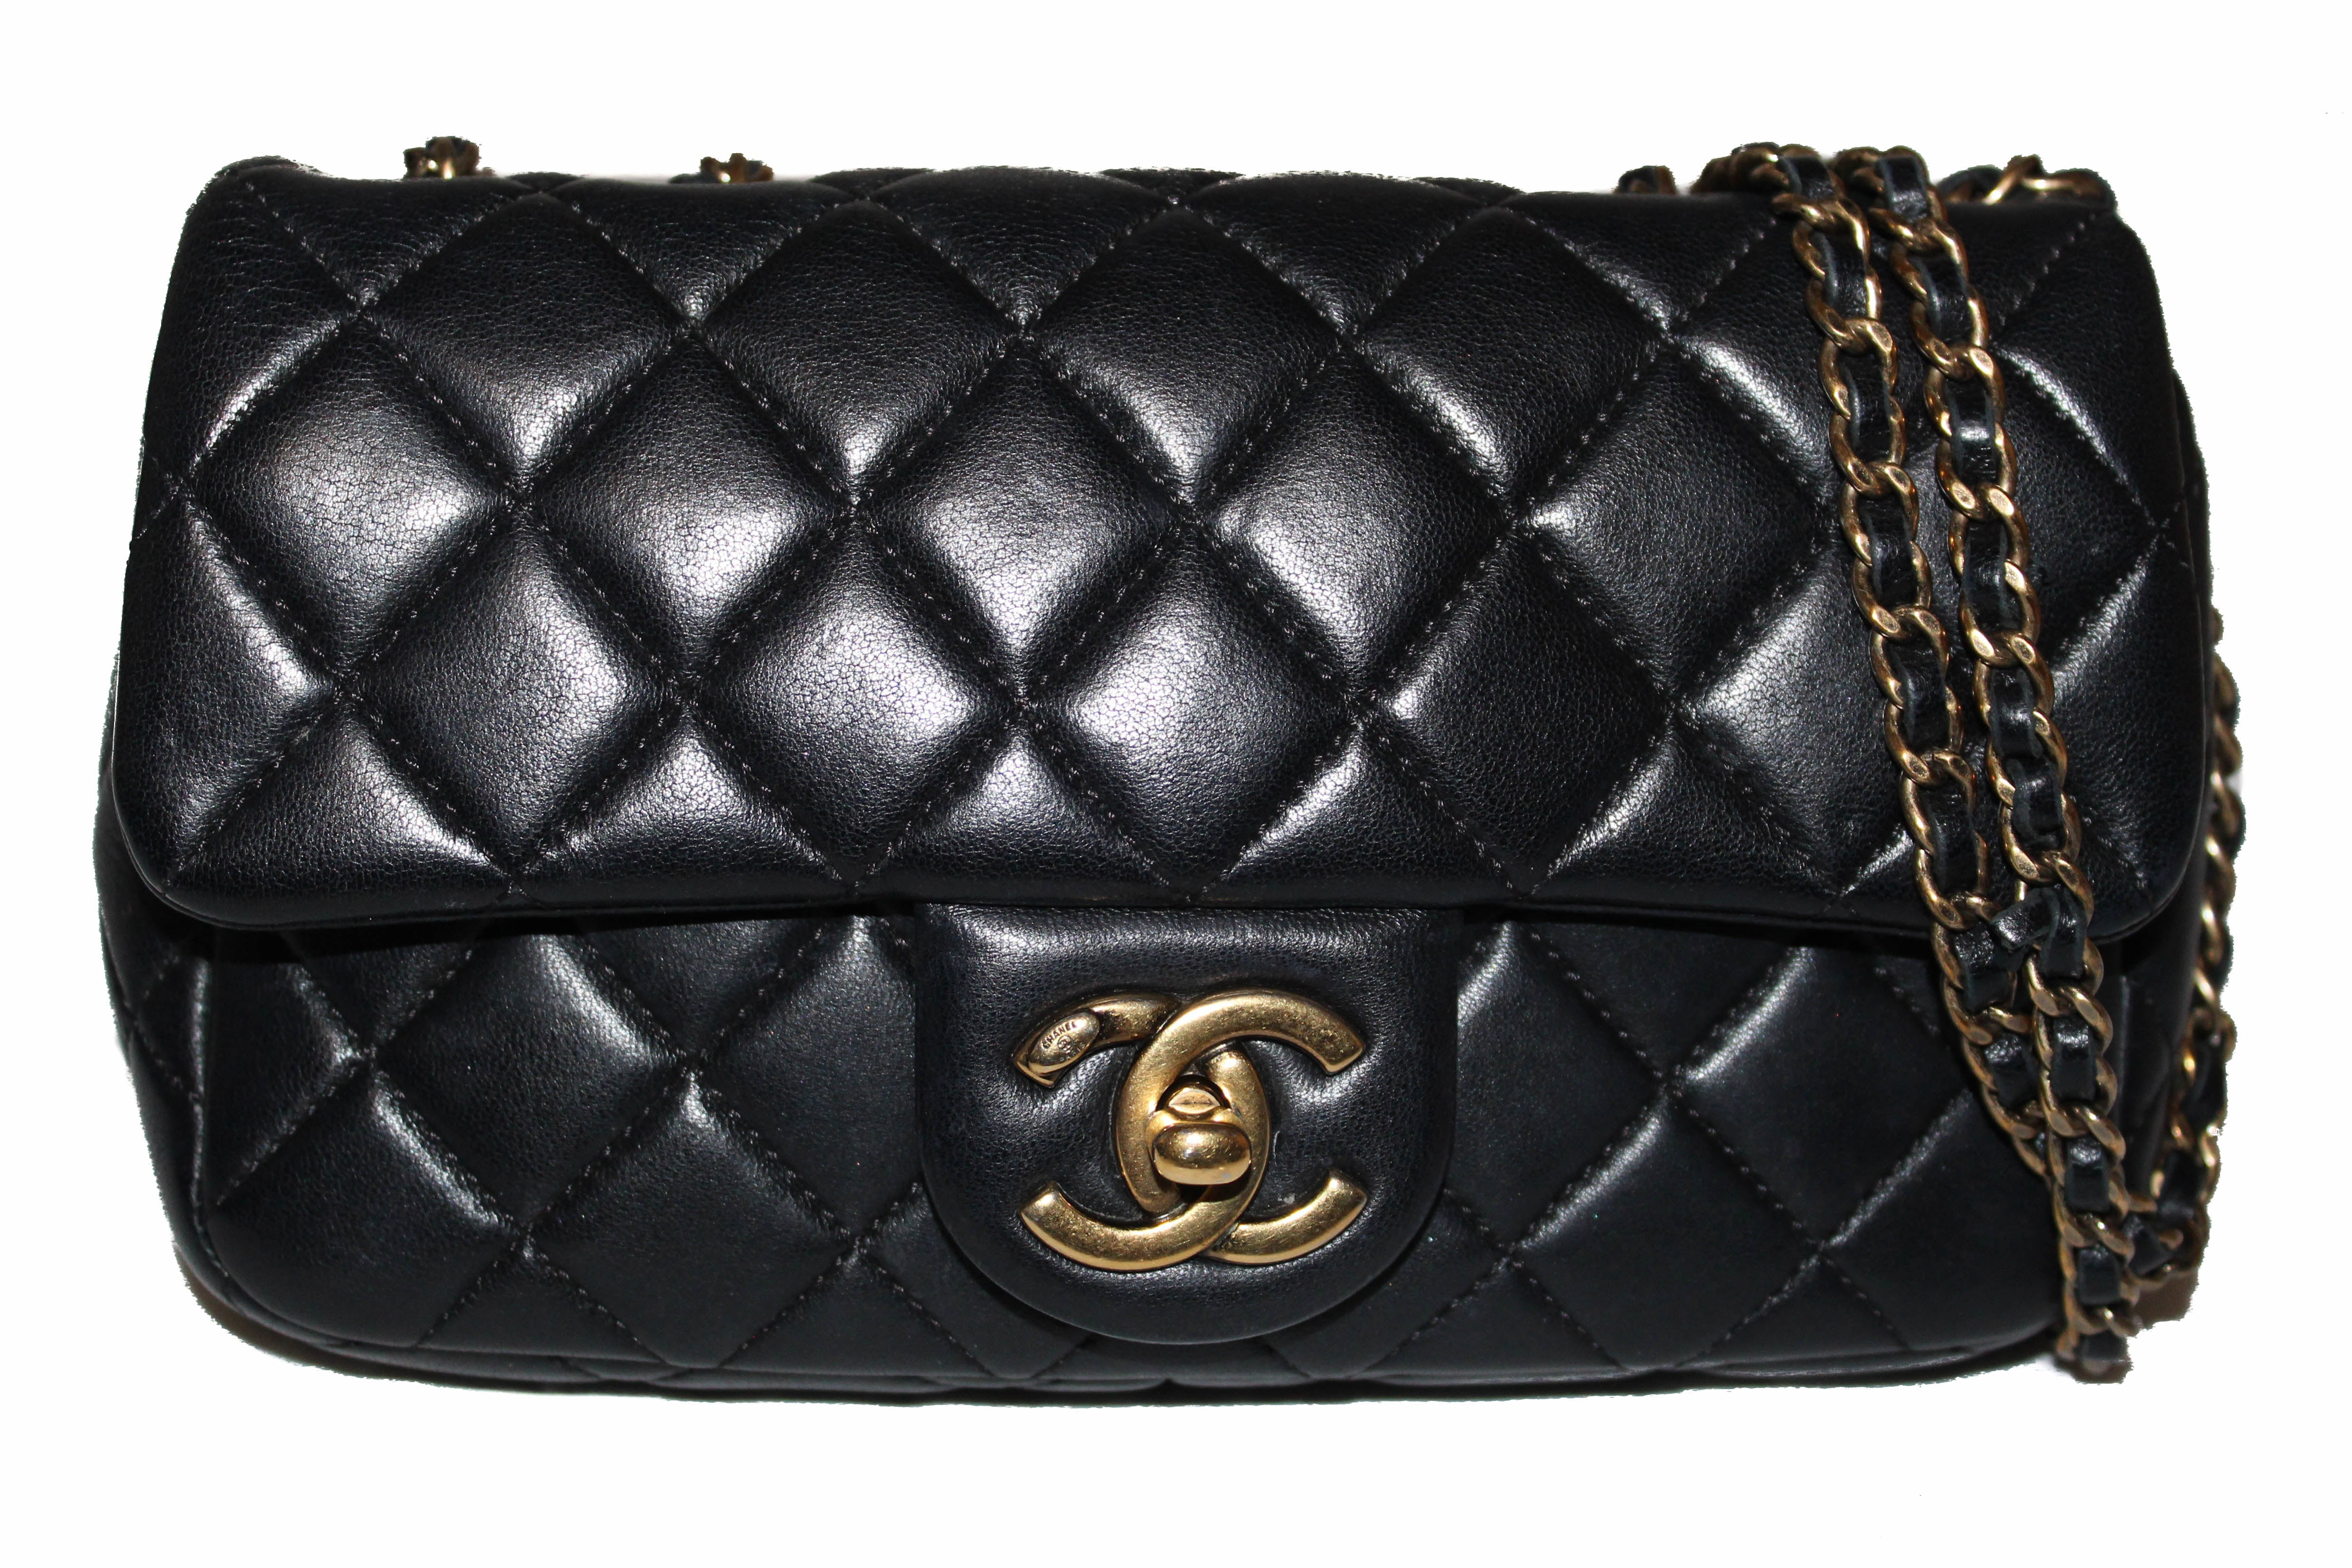 Authentic Chanel Black Lambskin Leather Mini Rectangular Quilted Classic Chain Bag